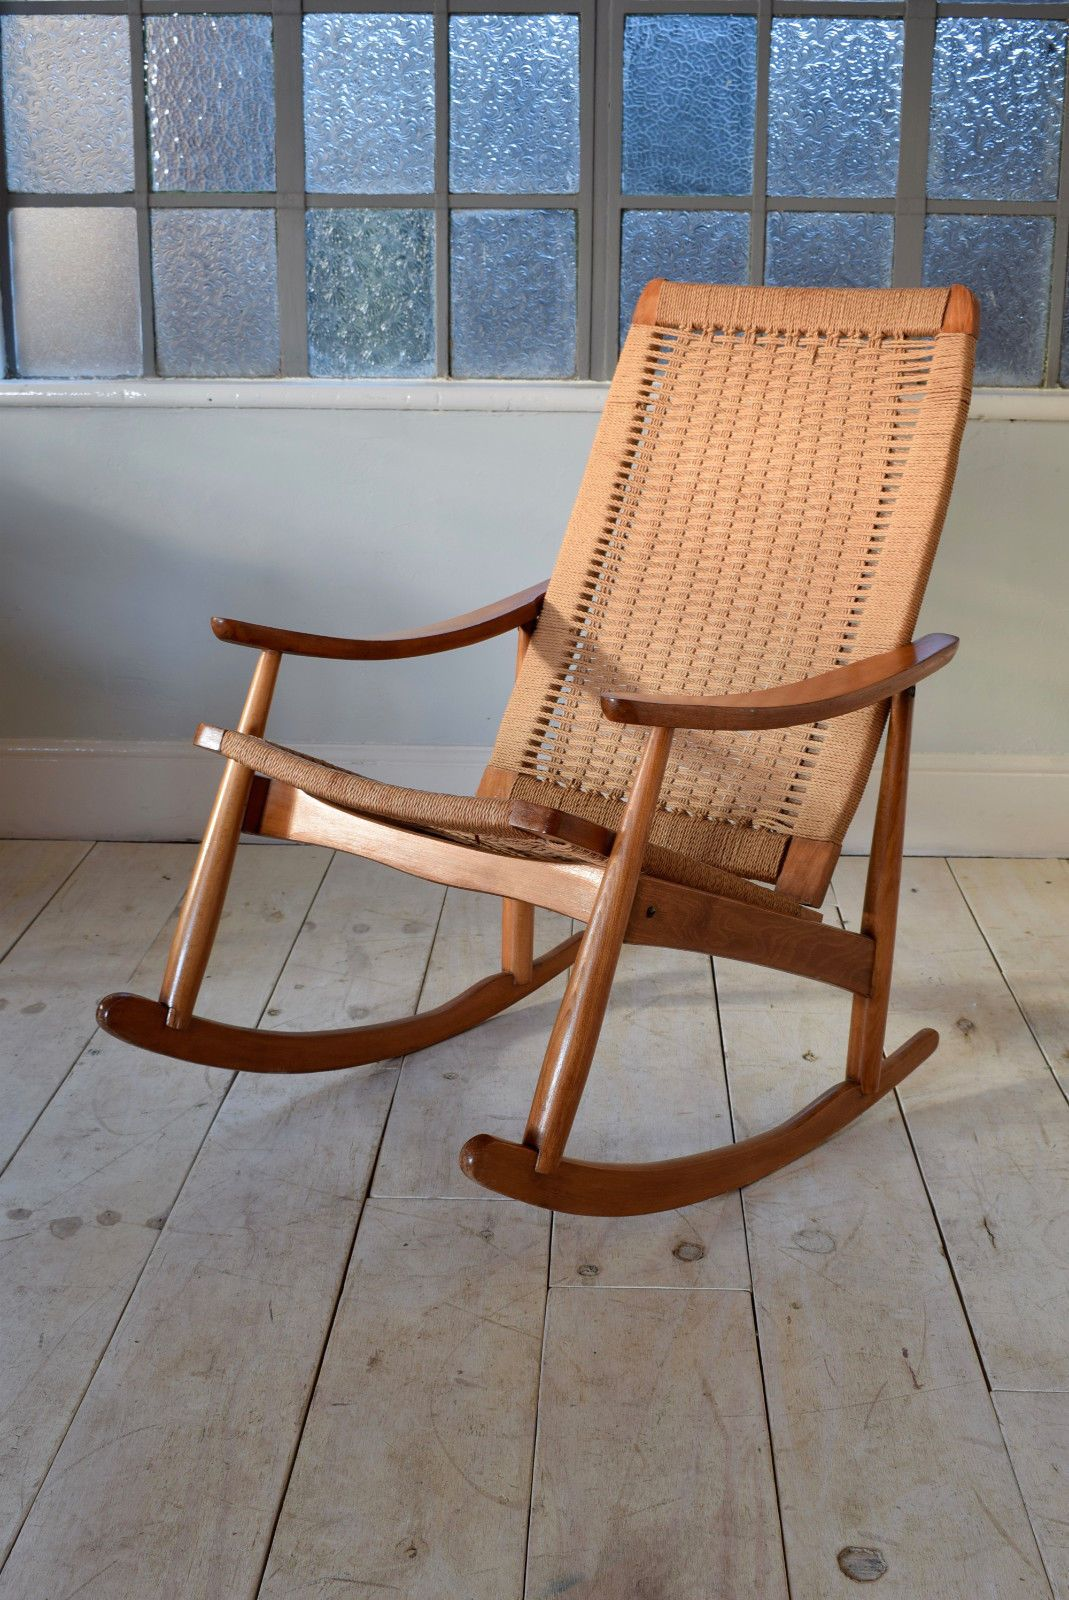 Outstanding Stunning Yugoslavian Mid Century Rocking Chair With Woven Squirreltailoven Fun Painted Chair Ideas Images Squirreltailovenorg